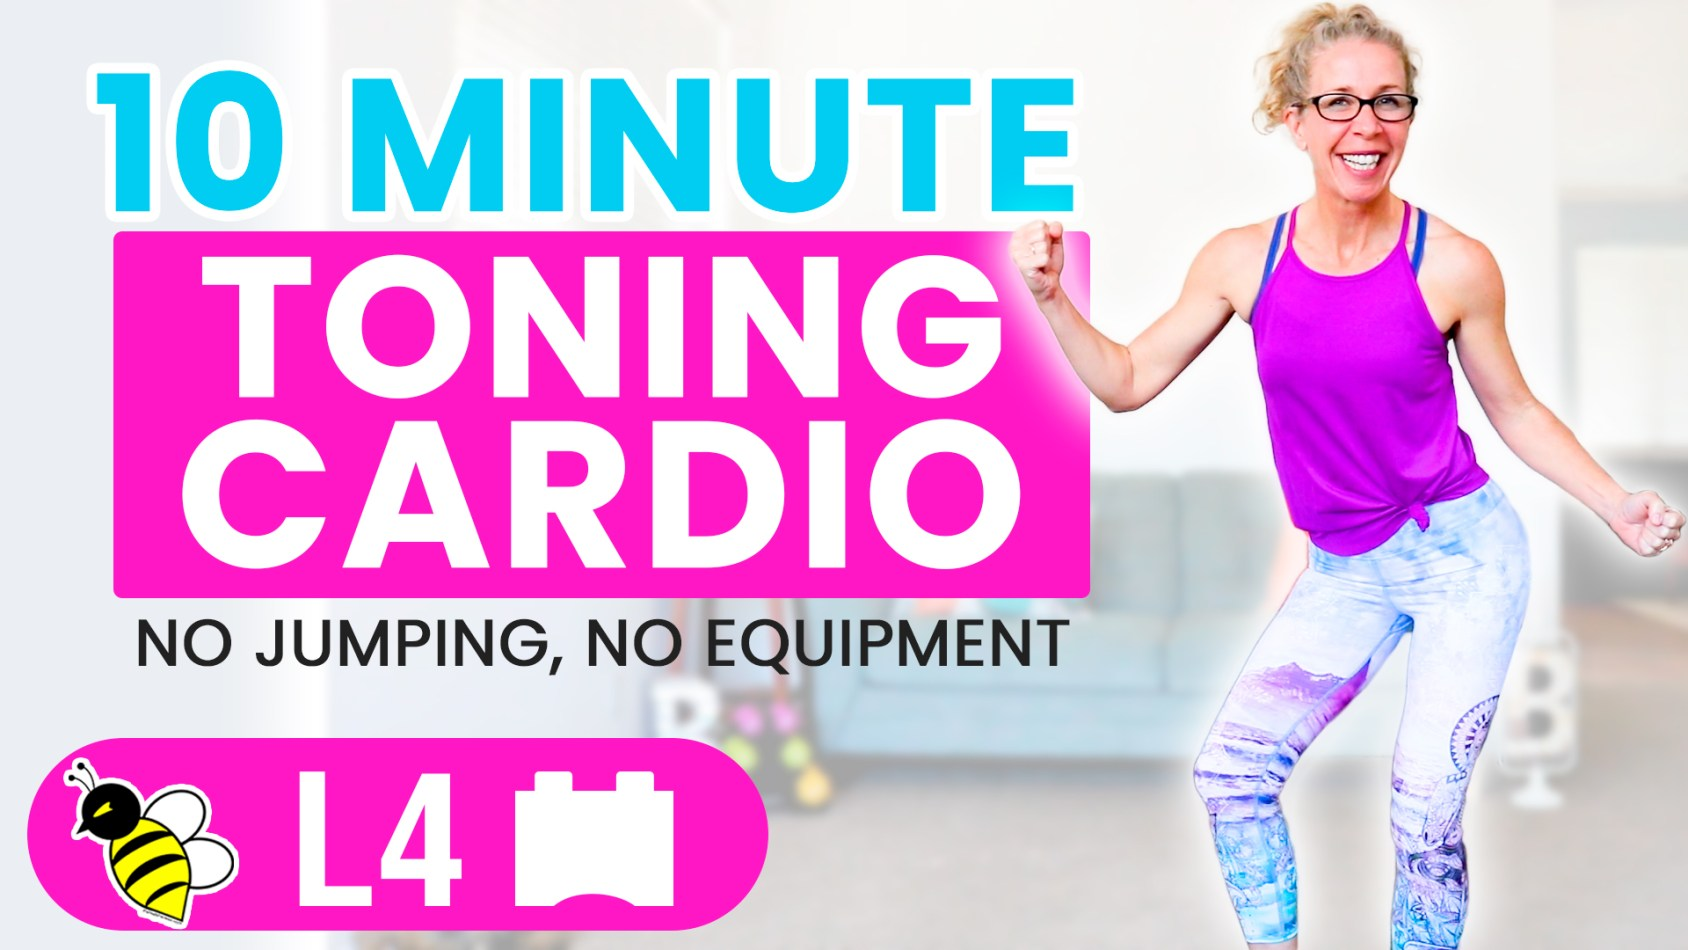 10 Minute Low Impact Toning CARDIO quick stackable workout without jumping